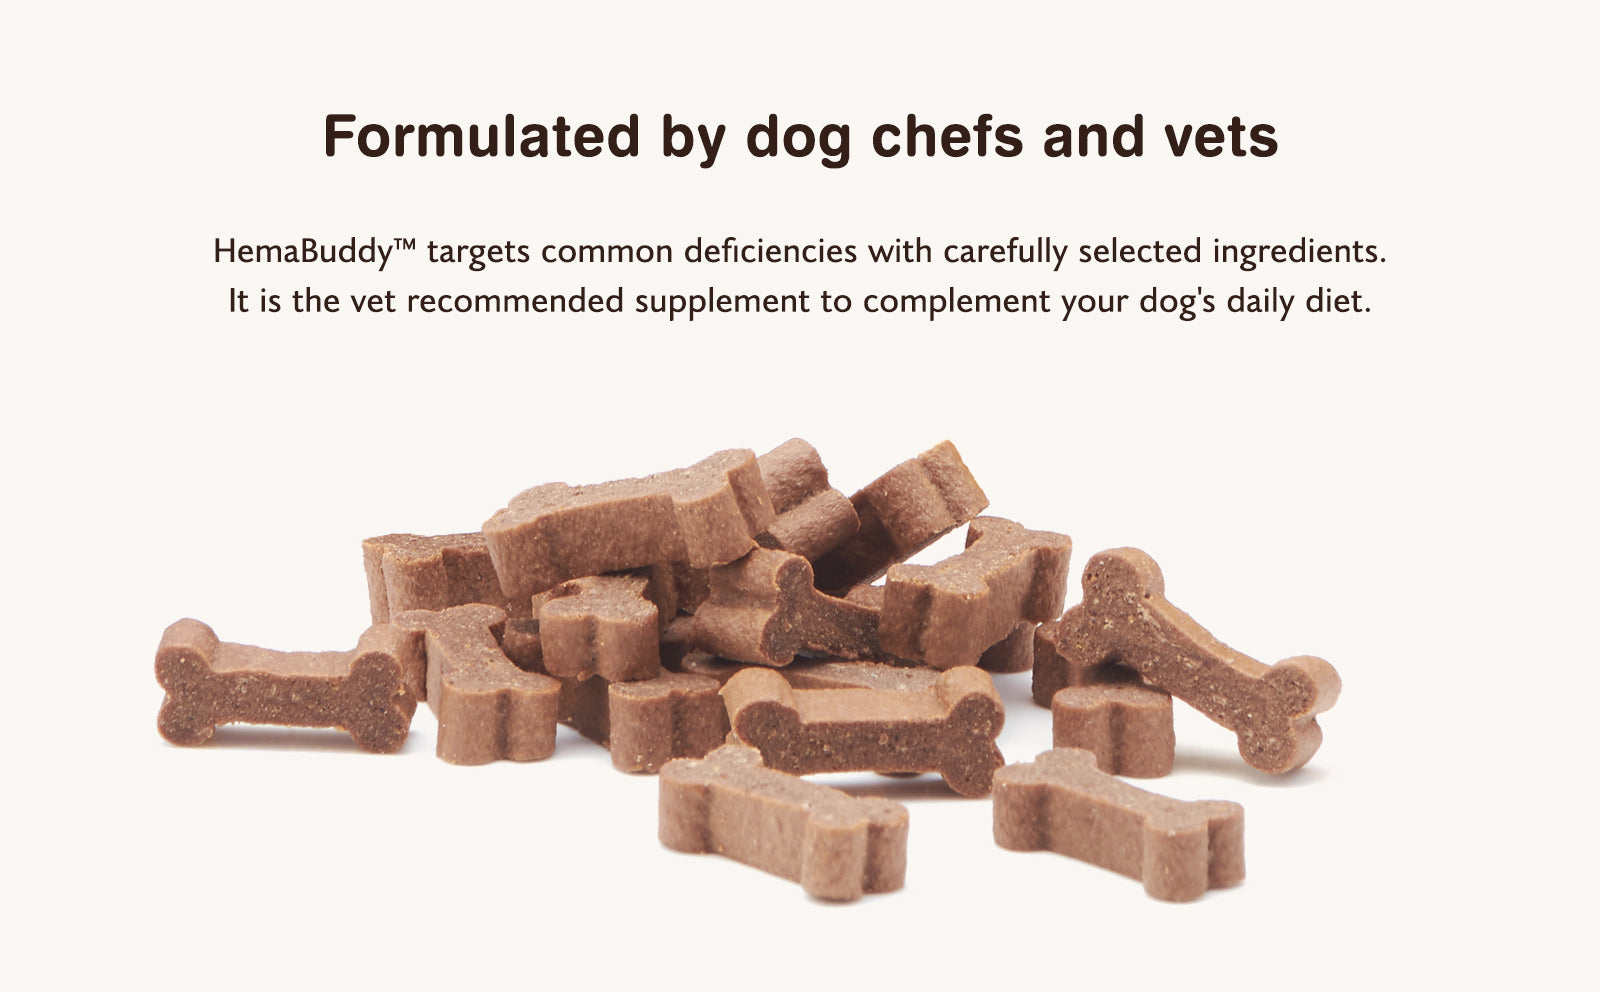 Formulated by dog chefs and vets HemaBuddy™ targets common deficiencies with carefully selected ingredients. It is the vet recommended supplement to complement your dog's daily diet.